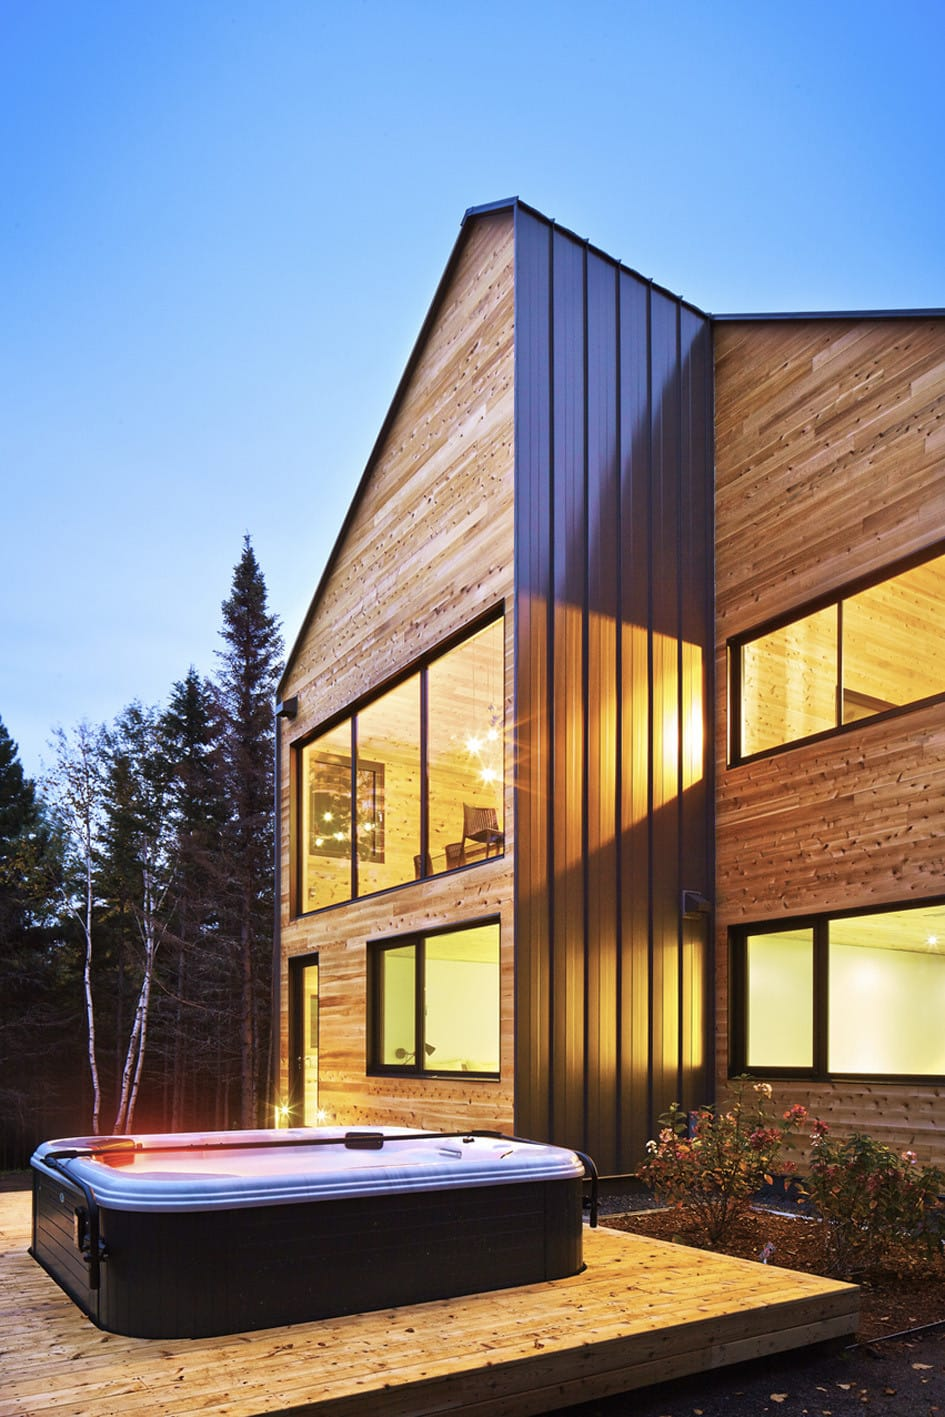 Резиденция Malbaie VIII в районе Charlevoix, Канада от MU Architecture, HQ architecture, HQarch, HQ arch, high quality architecture